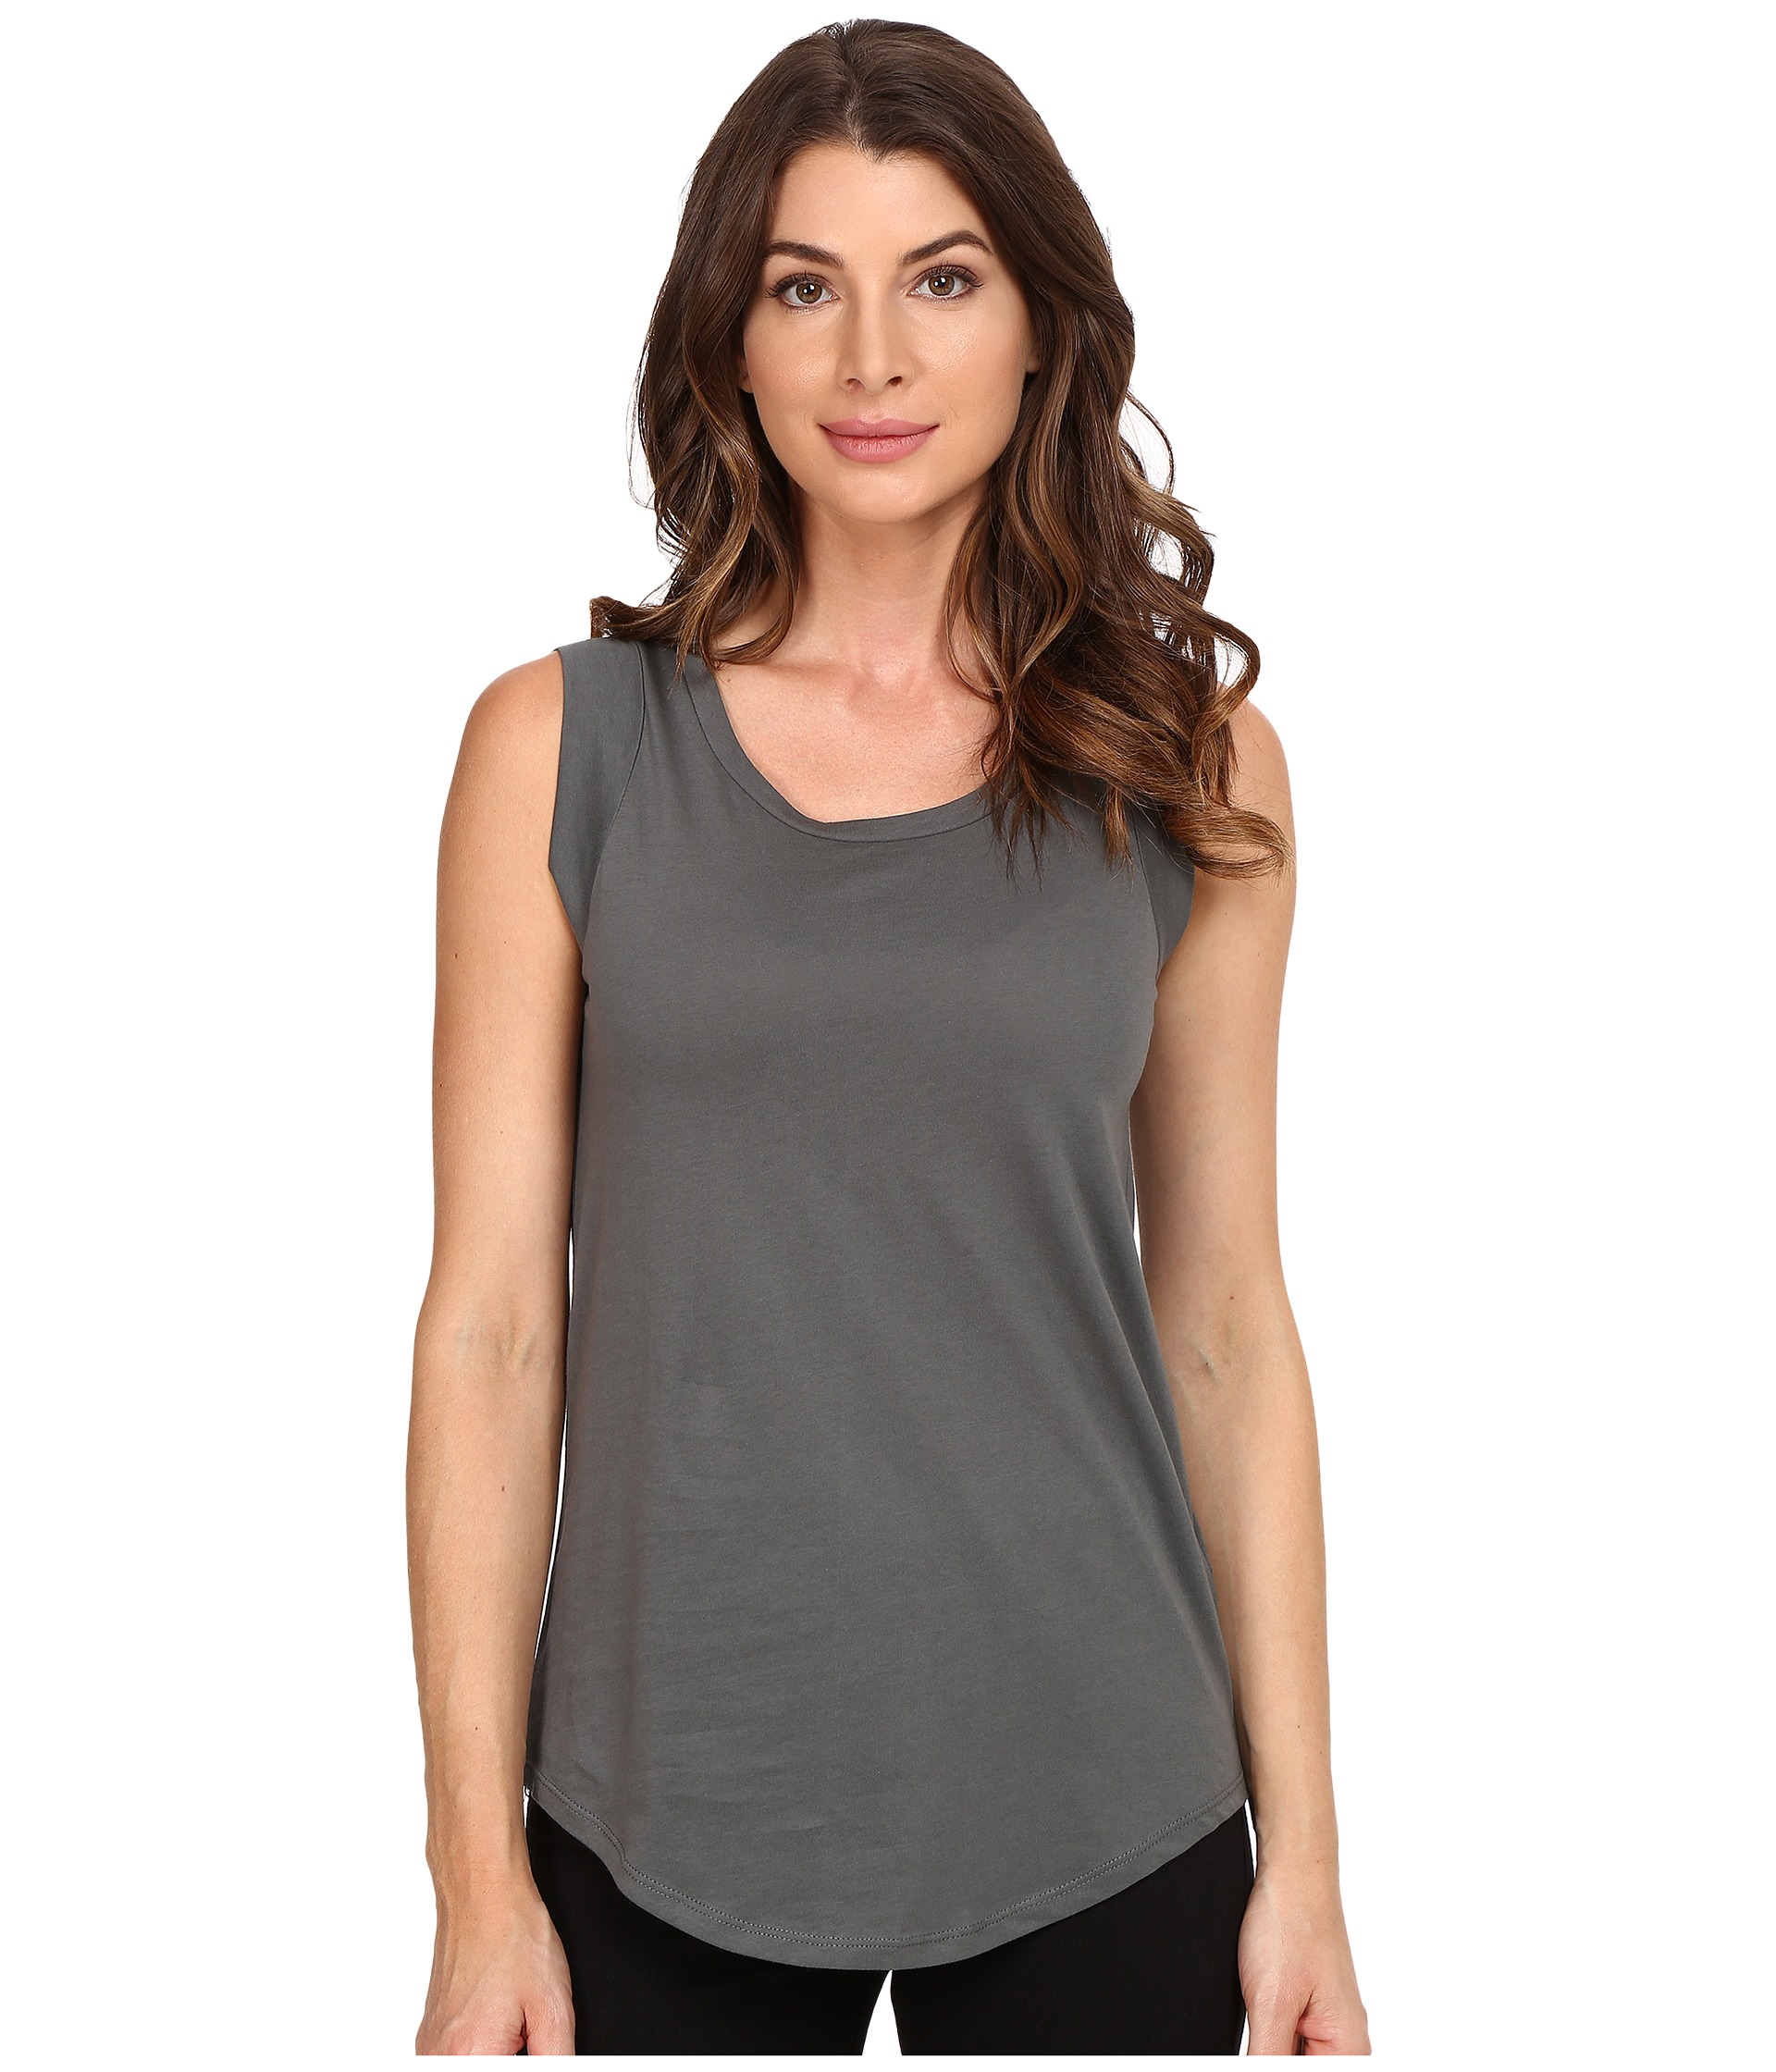 Women's Clothing: Shirts, Jackets, Jeans & More | Zappos.com